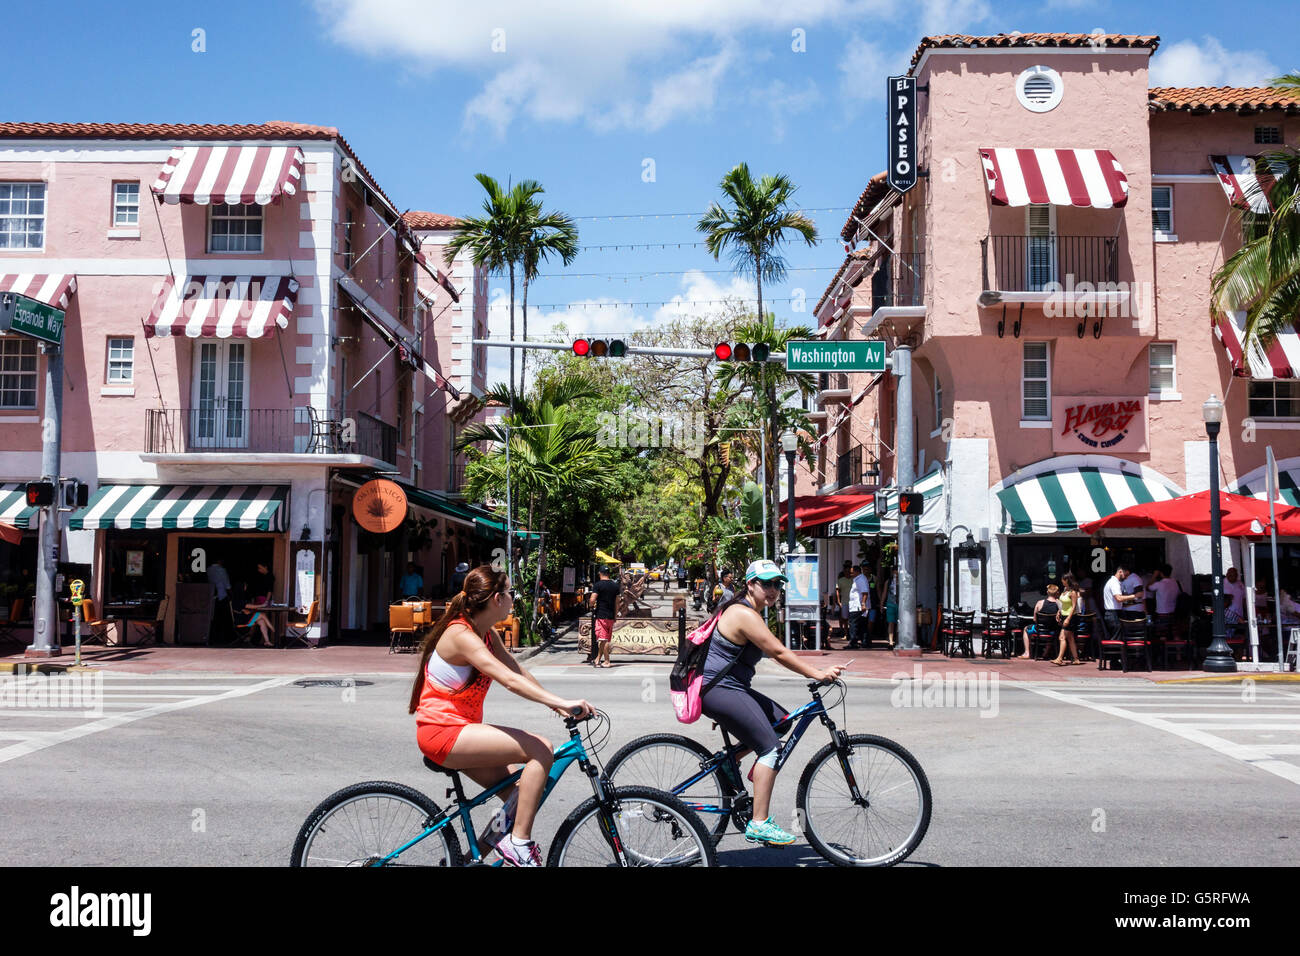 O Miami Miami Florida Beach Washington Avenue Espanola Way Spanisch